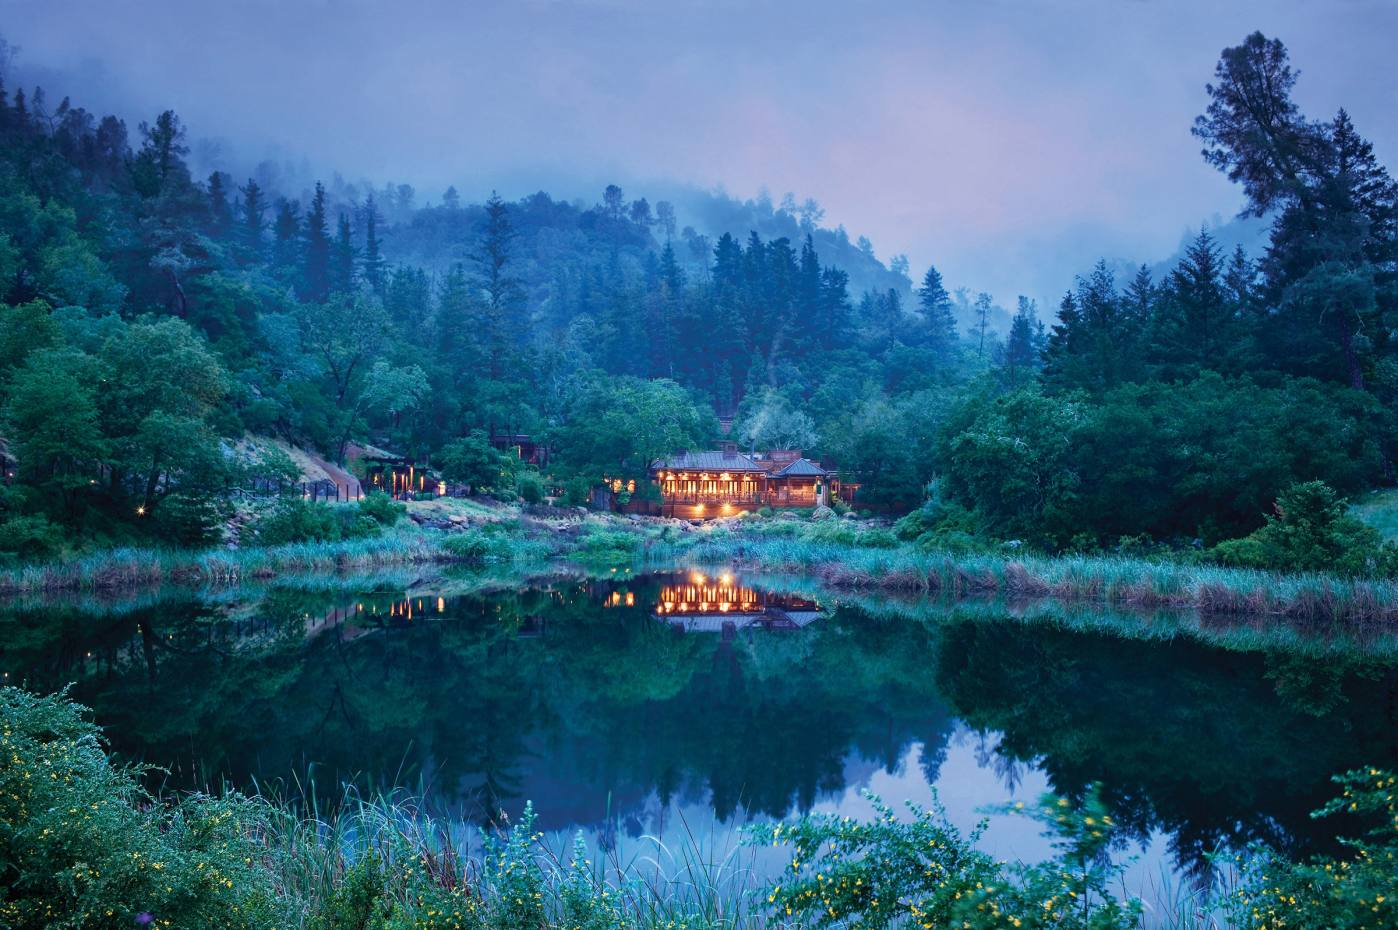 Auberge Resorts' Calistoga Ranch, set in a deep canyon in northern California's Napa Valley